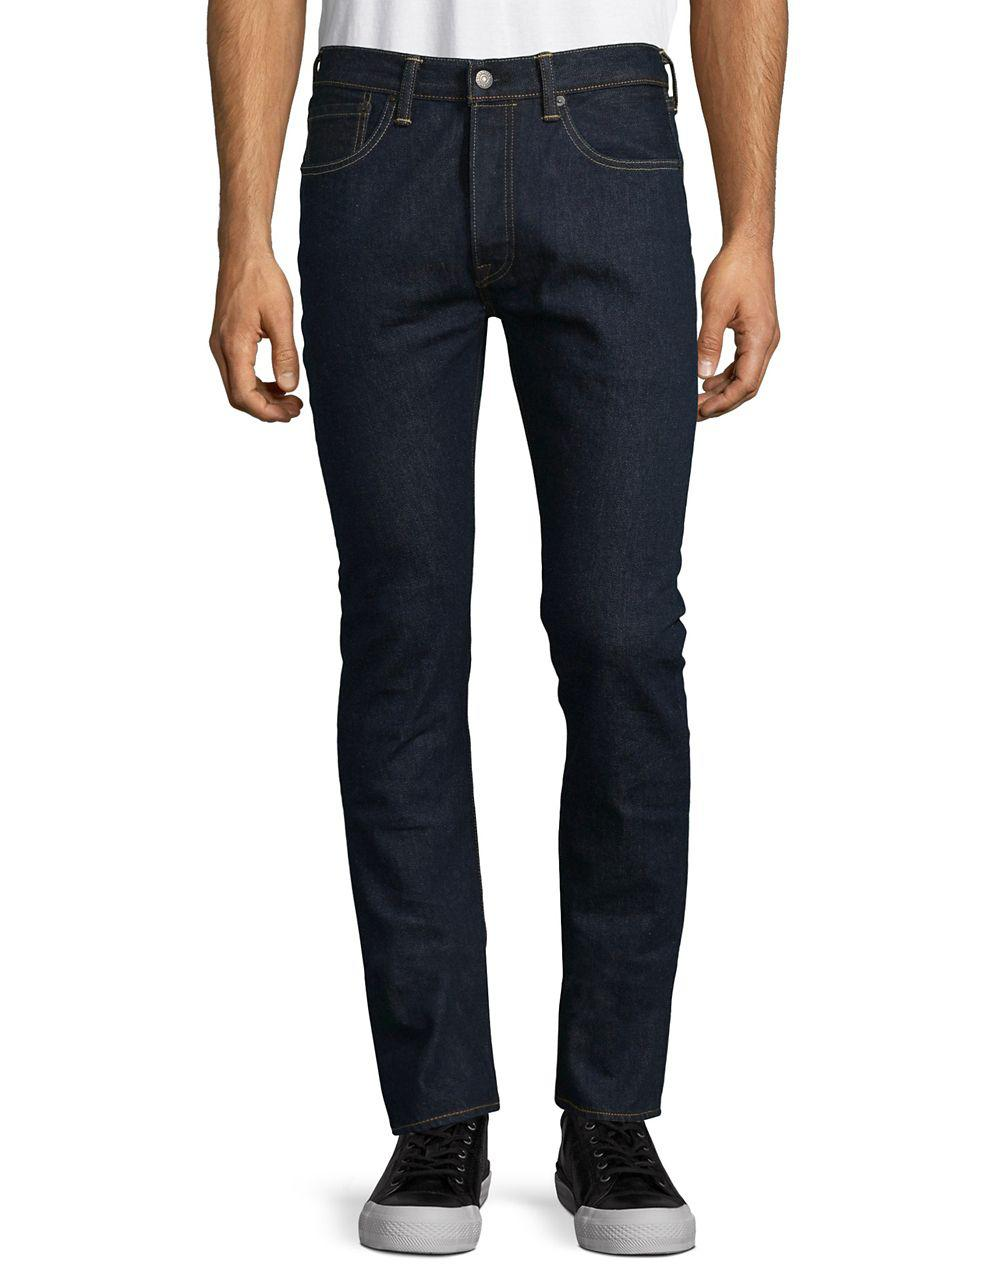 9a207952cd2 Levi'S 2-way Stretch Comfort Jeans in Blue for Men - Lyst